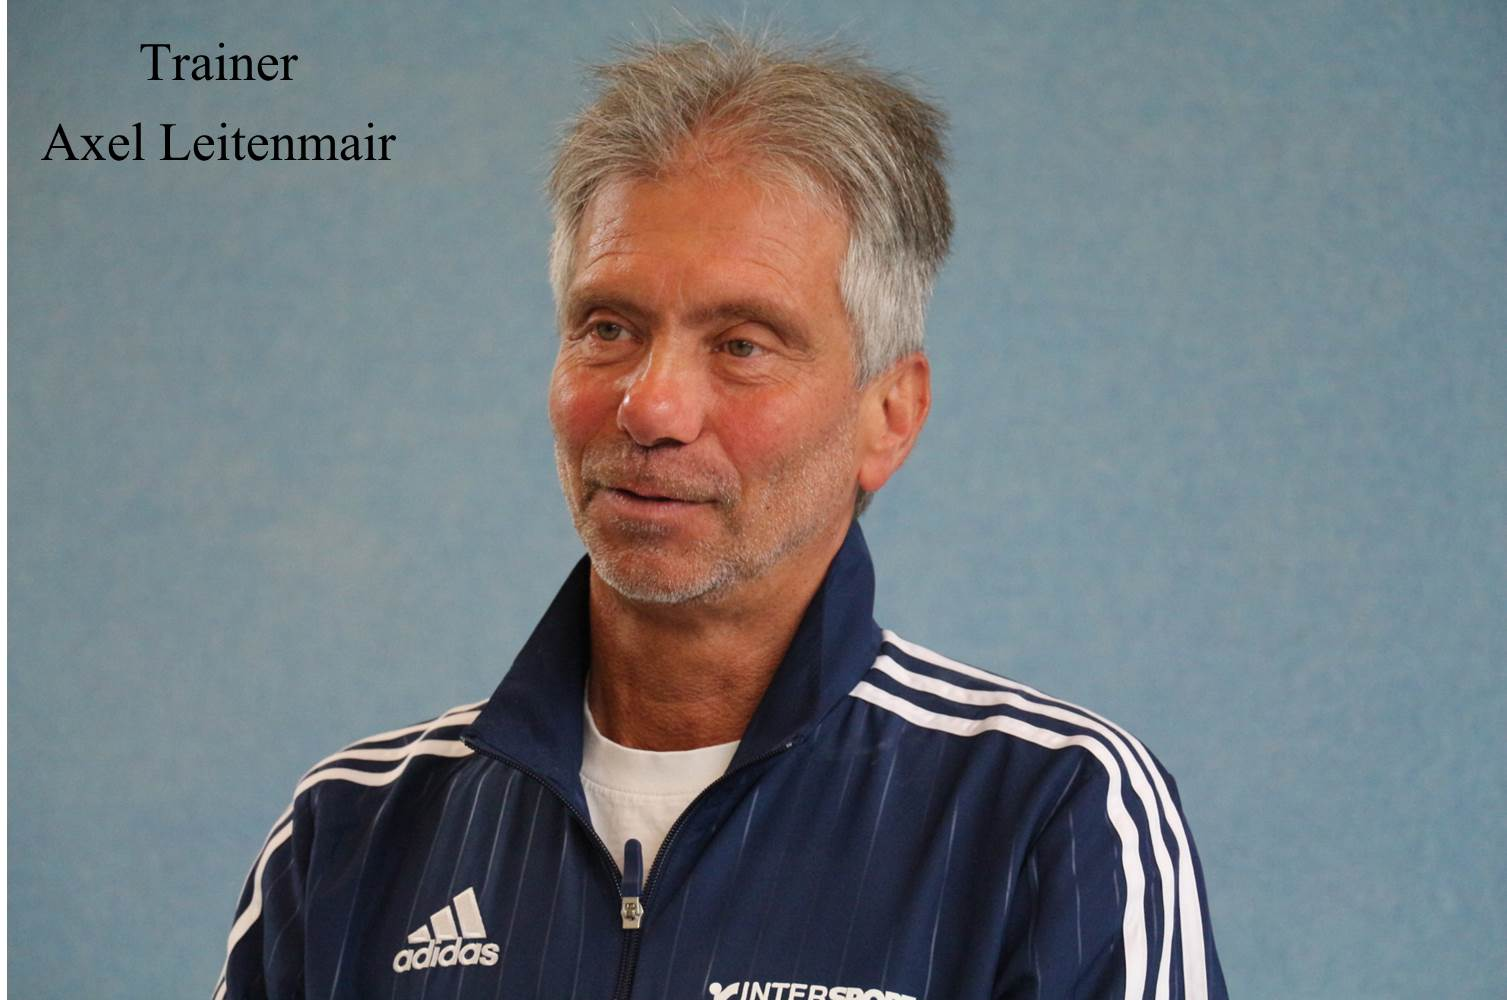 Axel Leitenmair_Trainer